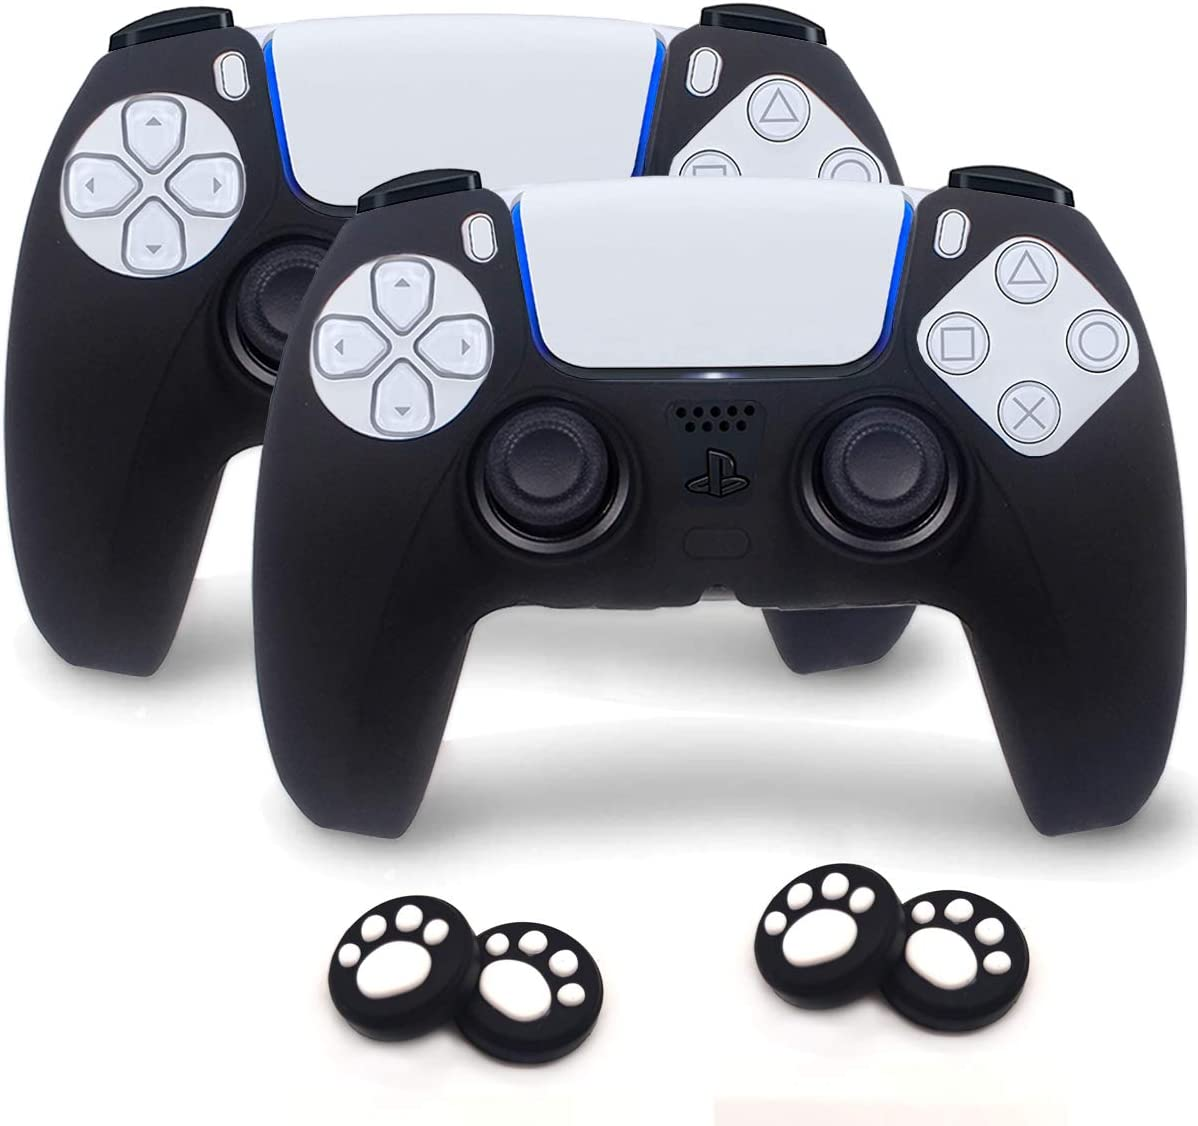 Sofunii 2 Pack Silicone Controller Skins Anti-Slip Cover Case Protector Sleeve for Playstation 5 /PS5 Controller with 4 Pack Paw Prints Thumb Grips (Black)